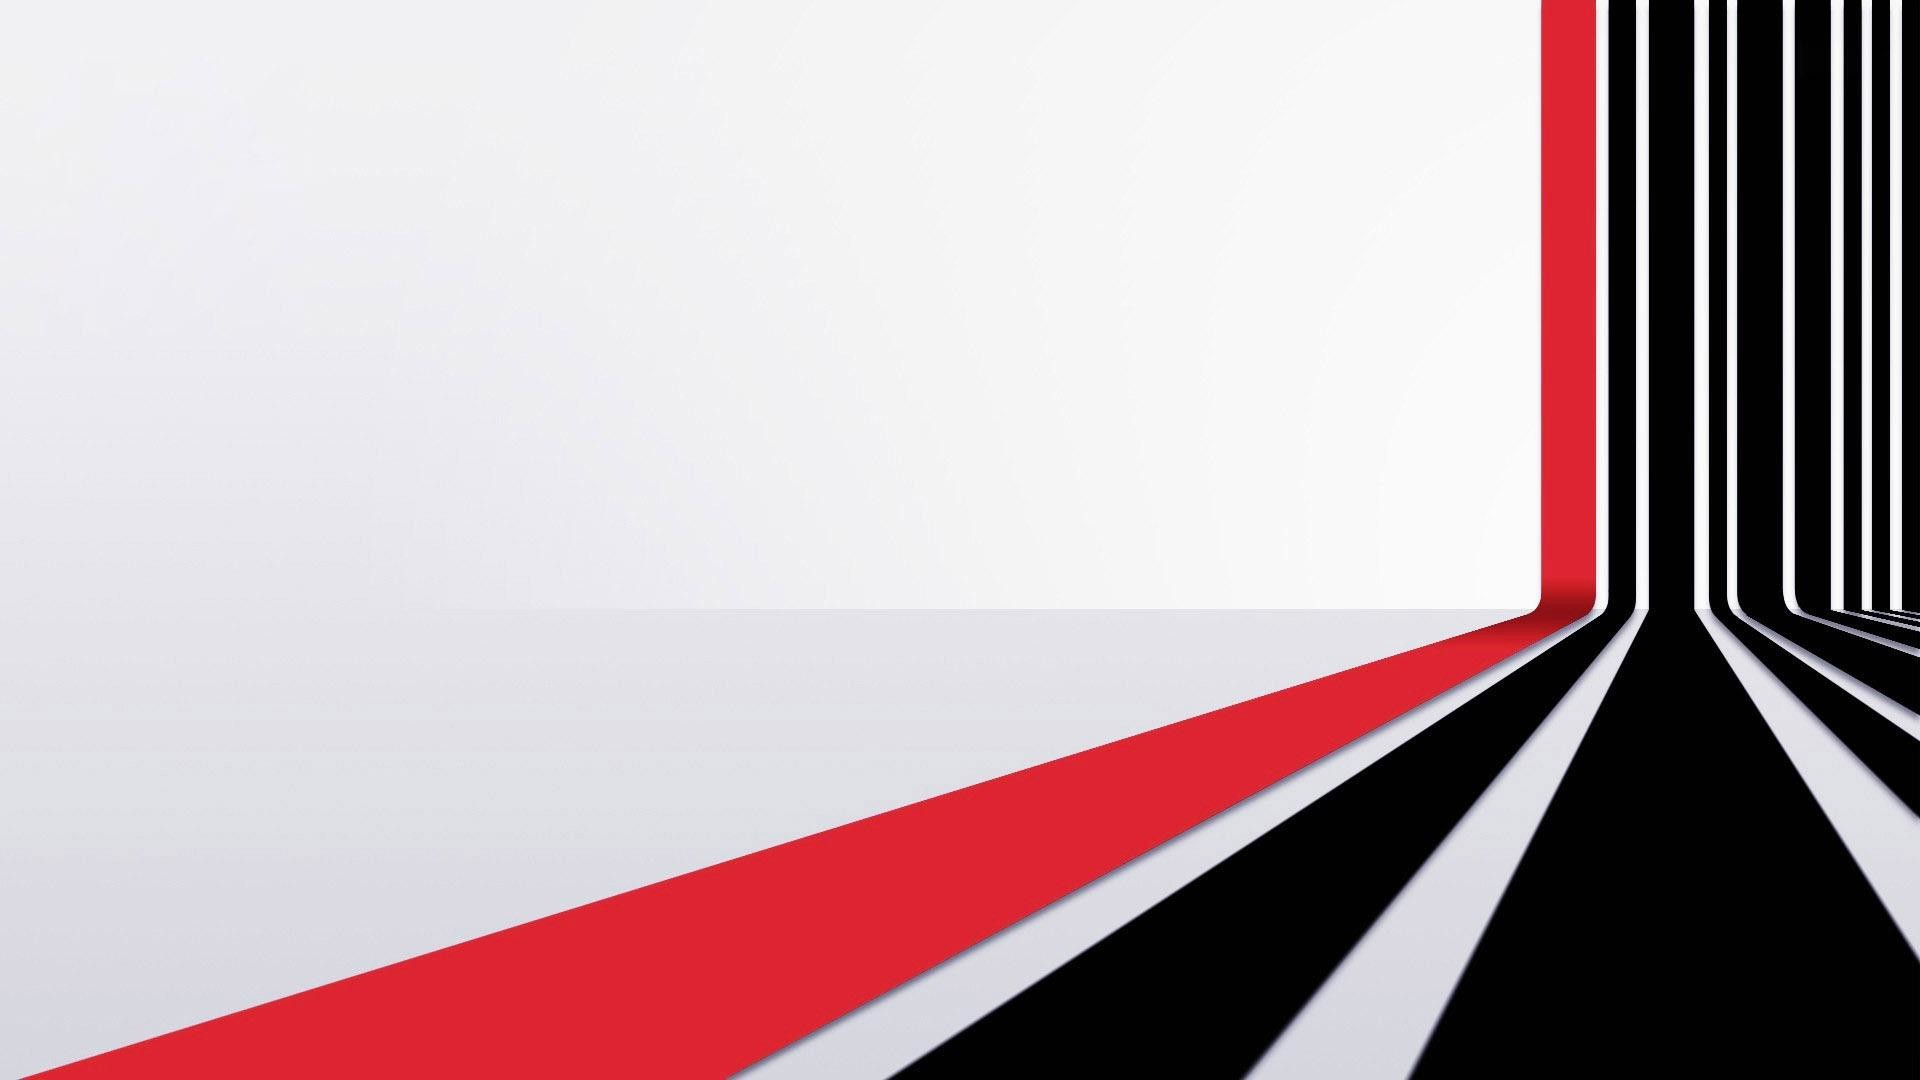 Black-red-and-white-wallpaper-hd-background